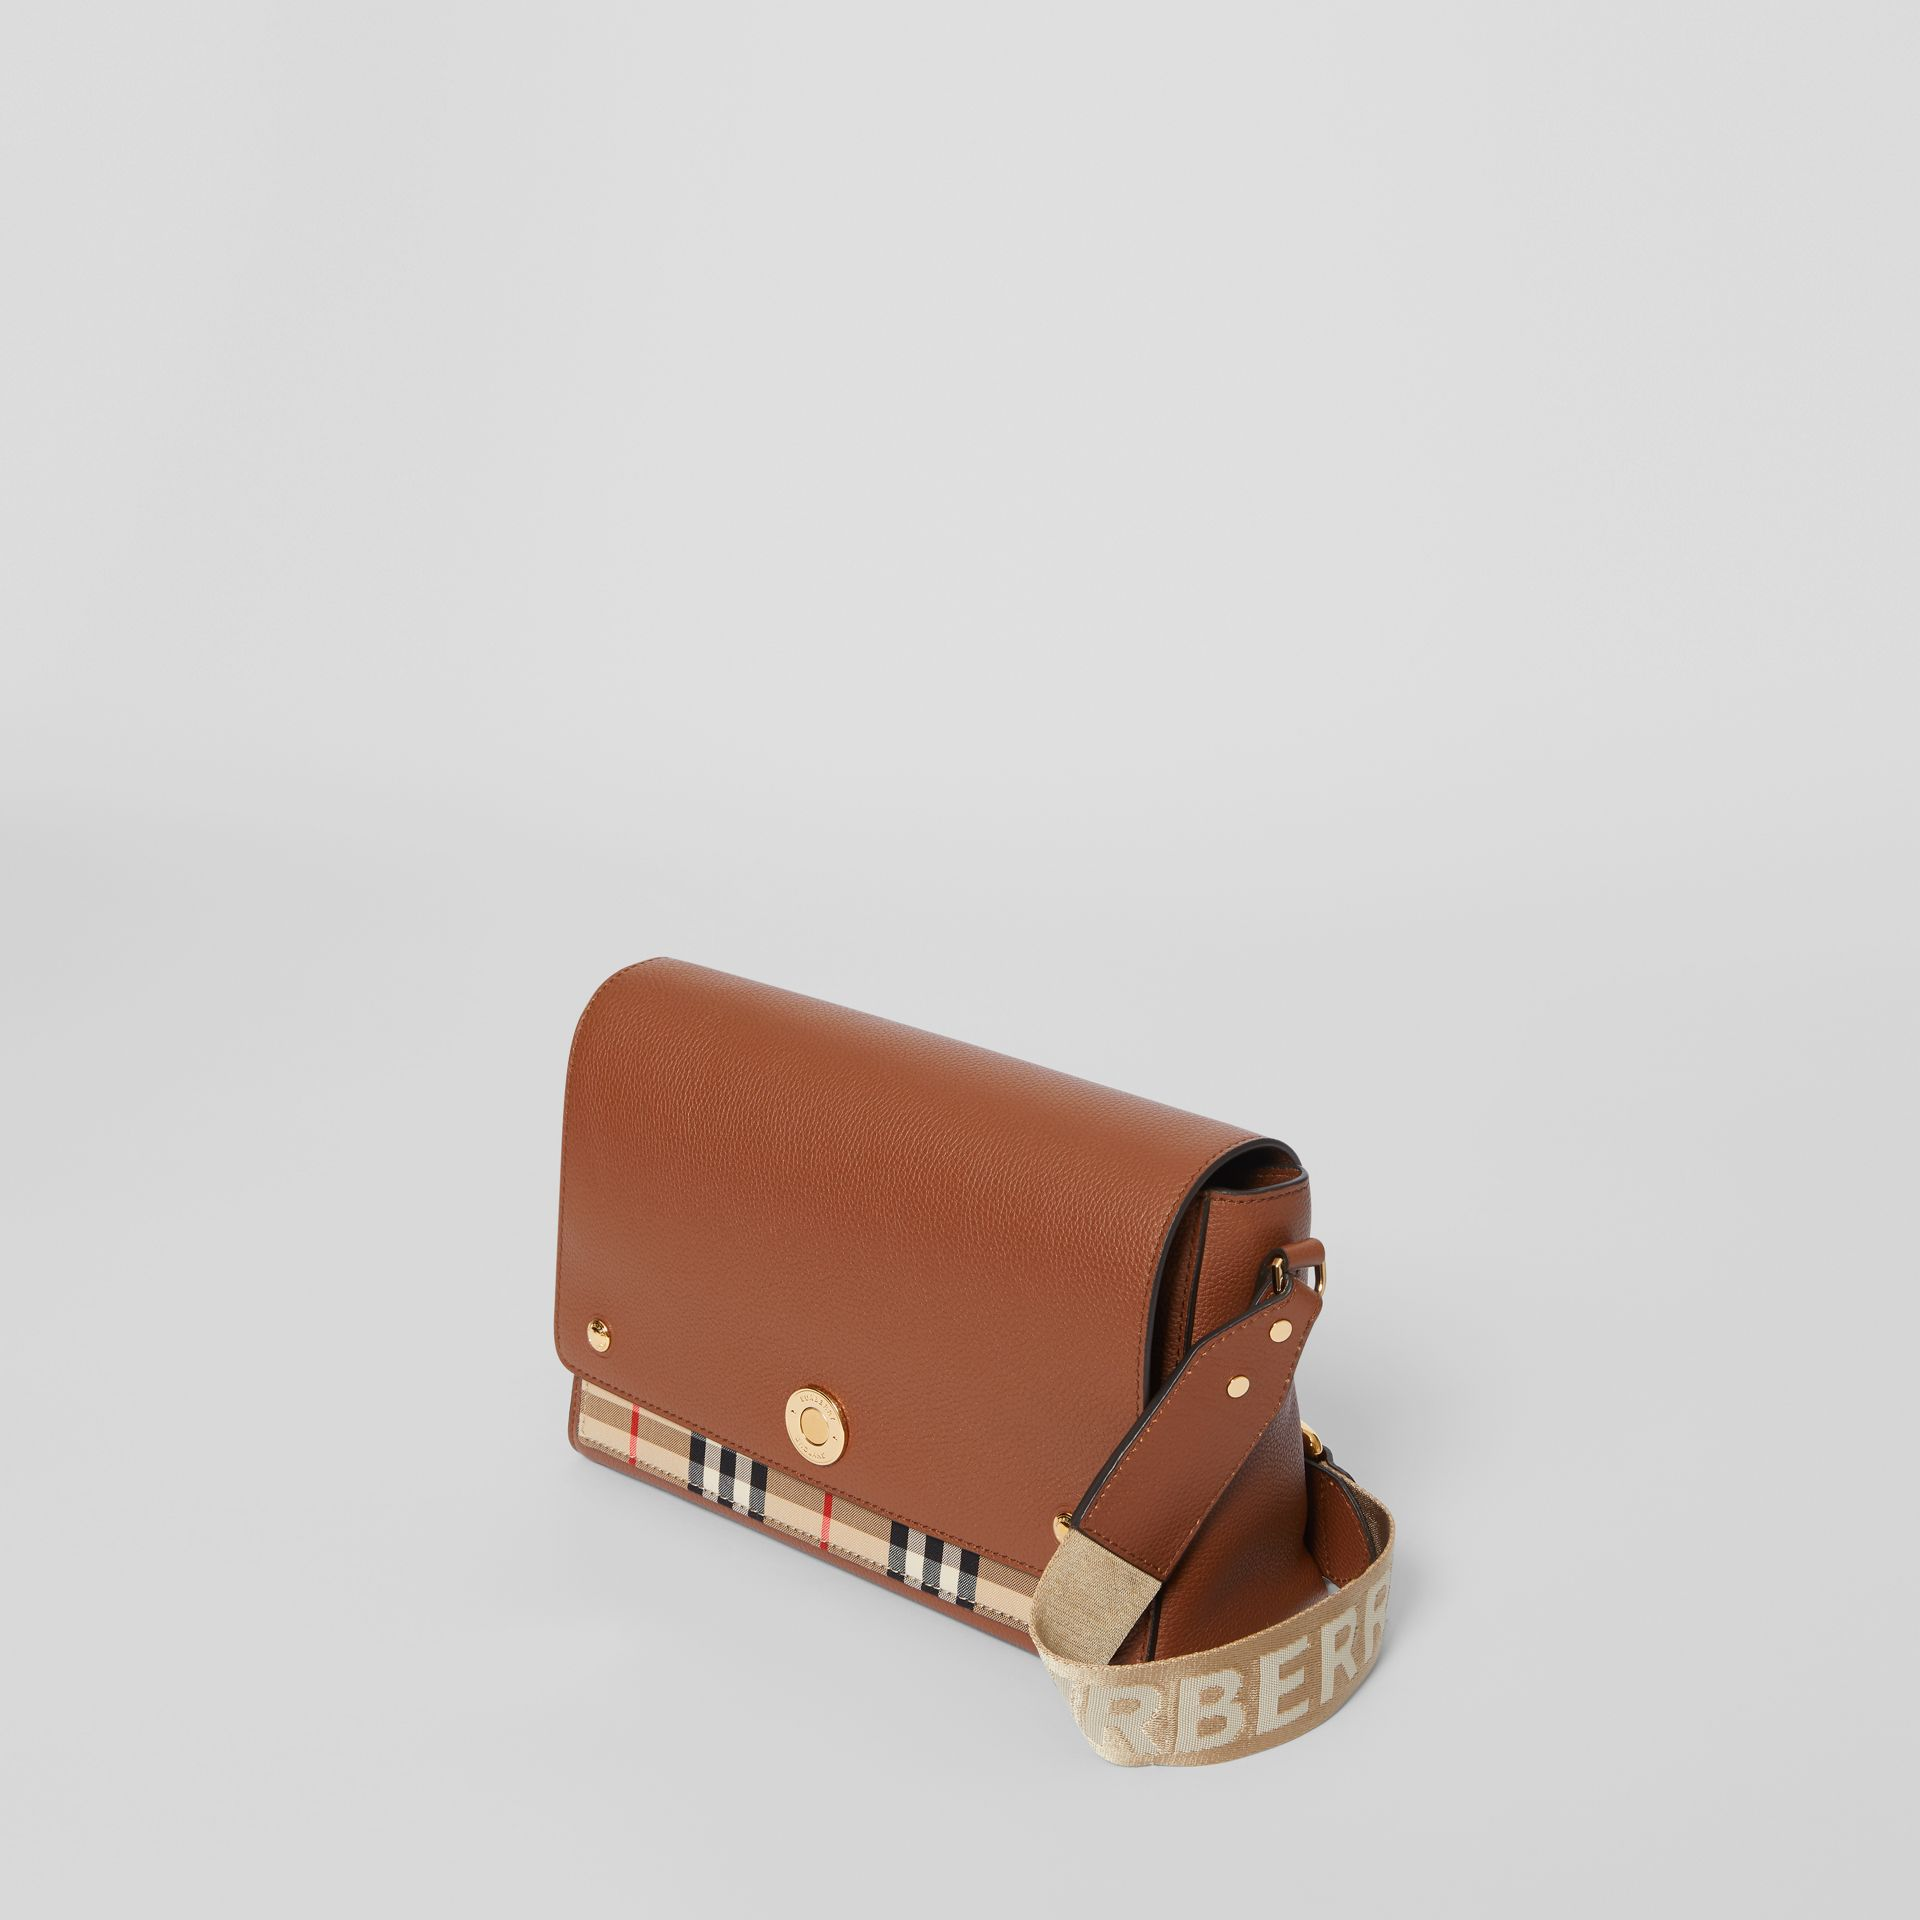 Leather and Vintage Check Note Crossbody Bag in Tan - Women | Burberry United Kingdom - gallery image 3